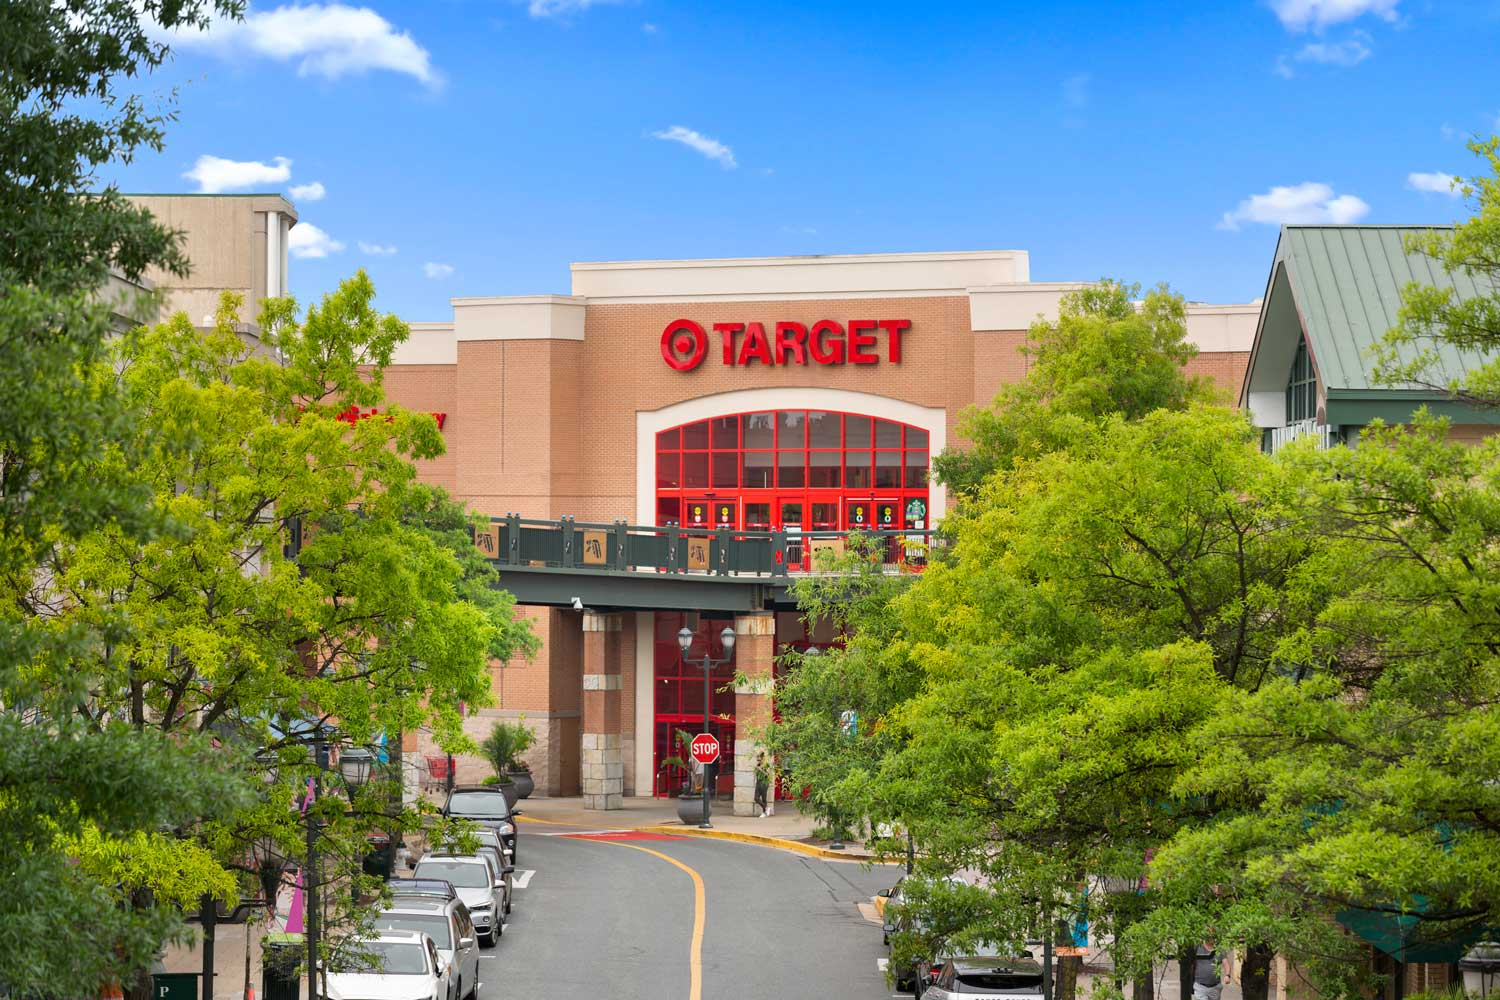 Target is 5 minutes from Governor Square Apartments in Gaithersburg, MD